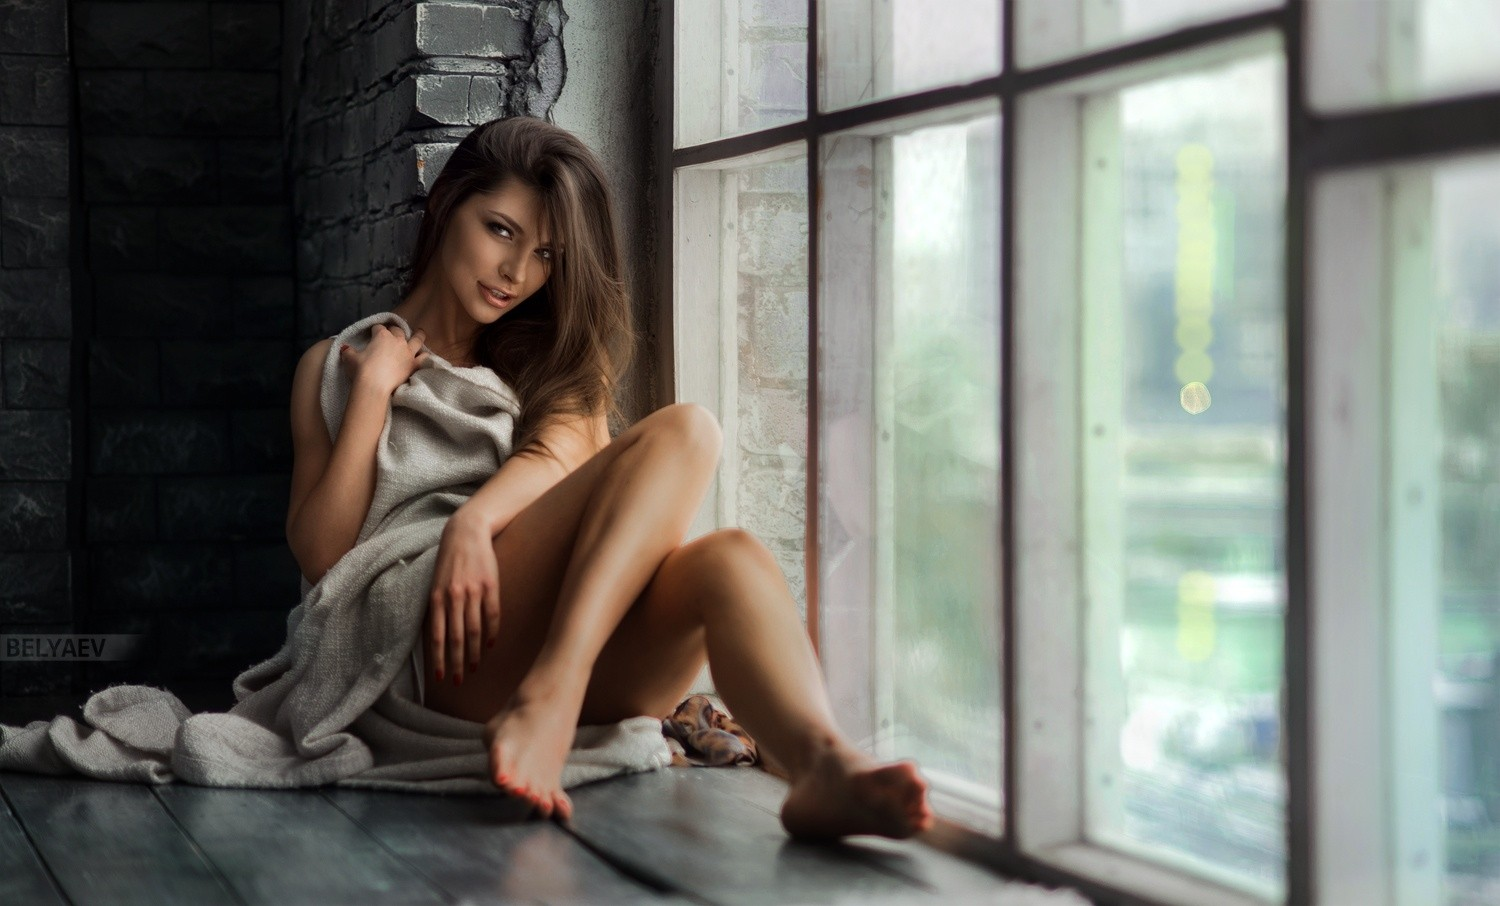 Dmitry_Belyaev_auburn_hair_long_hair_straight_hair_women_model_legs_barefoot-269579